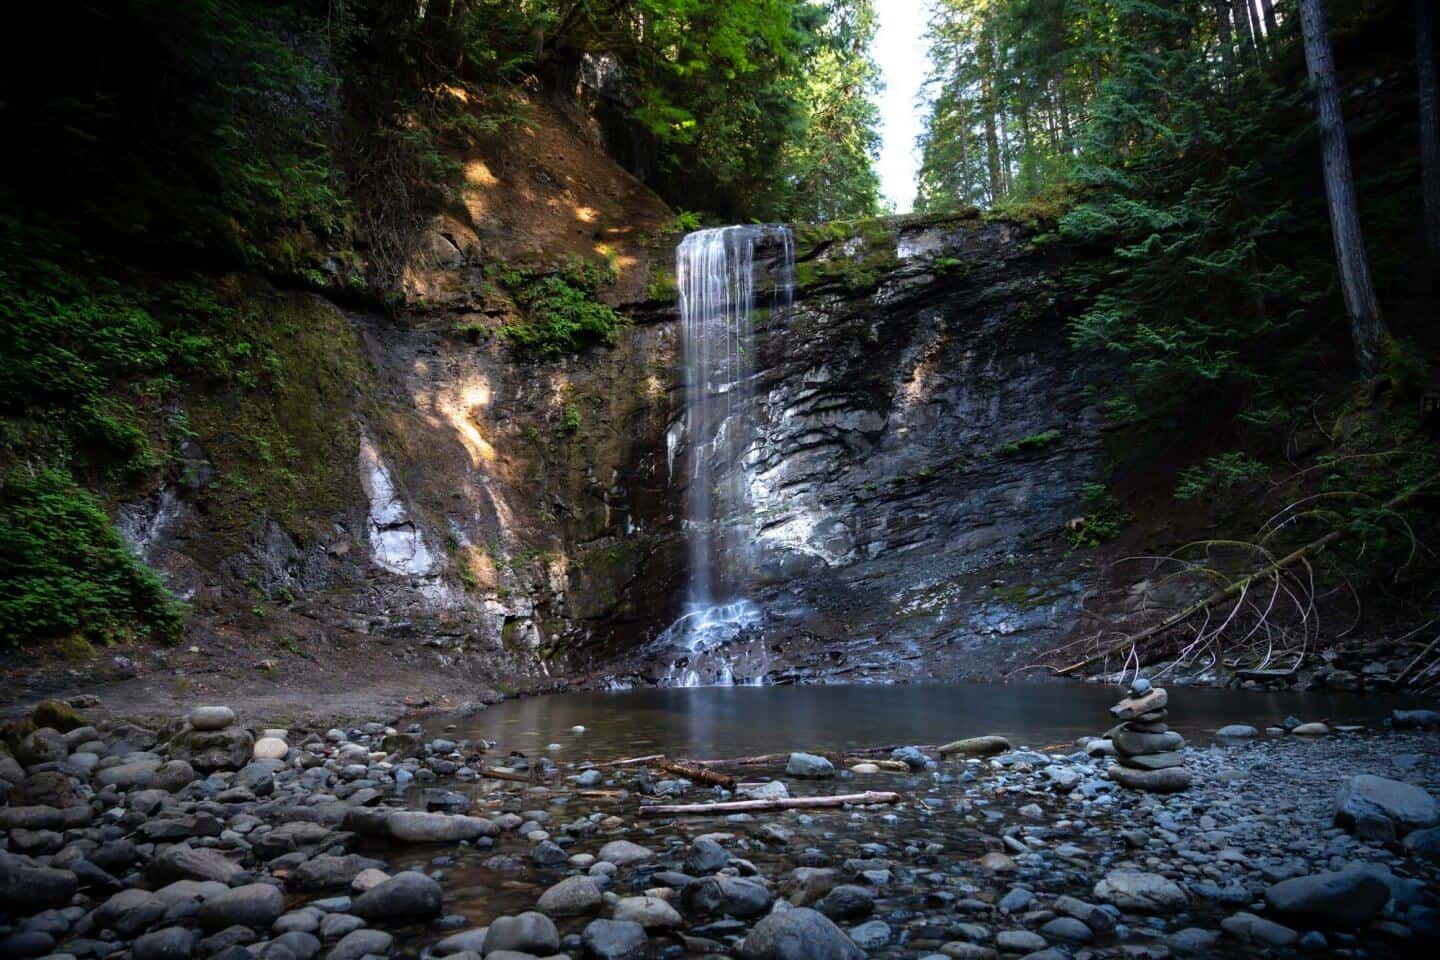 Whats left of the Ammorite Falls in the summer season outside Nanaimo